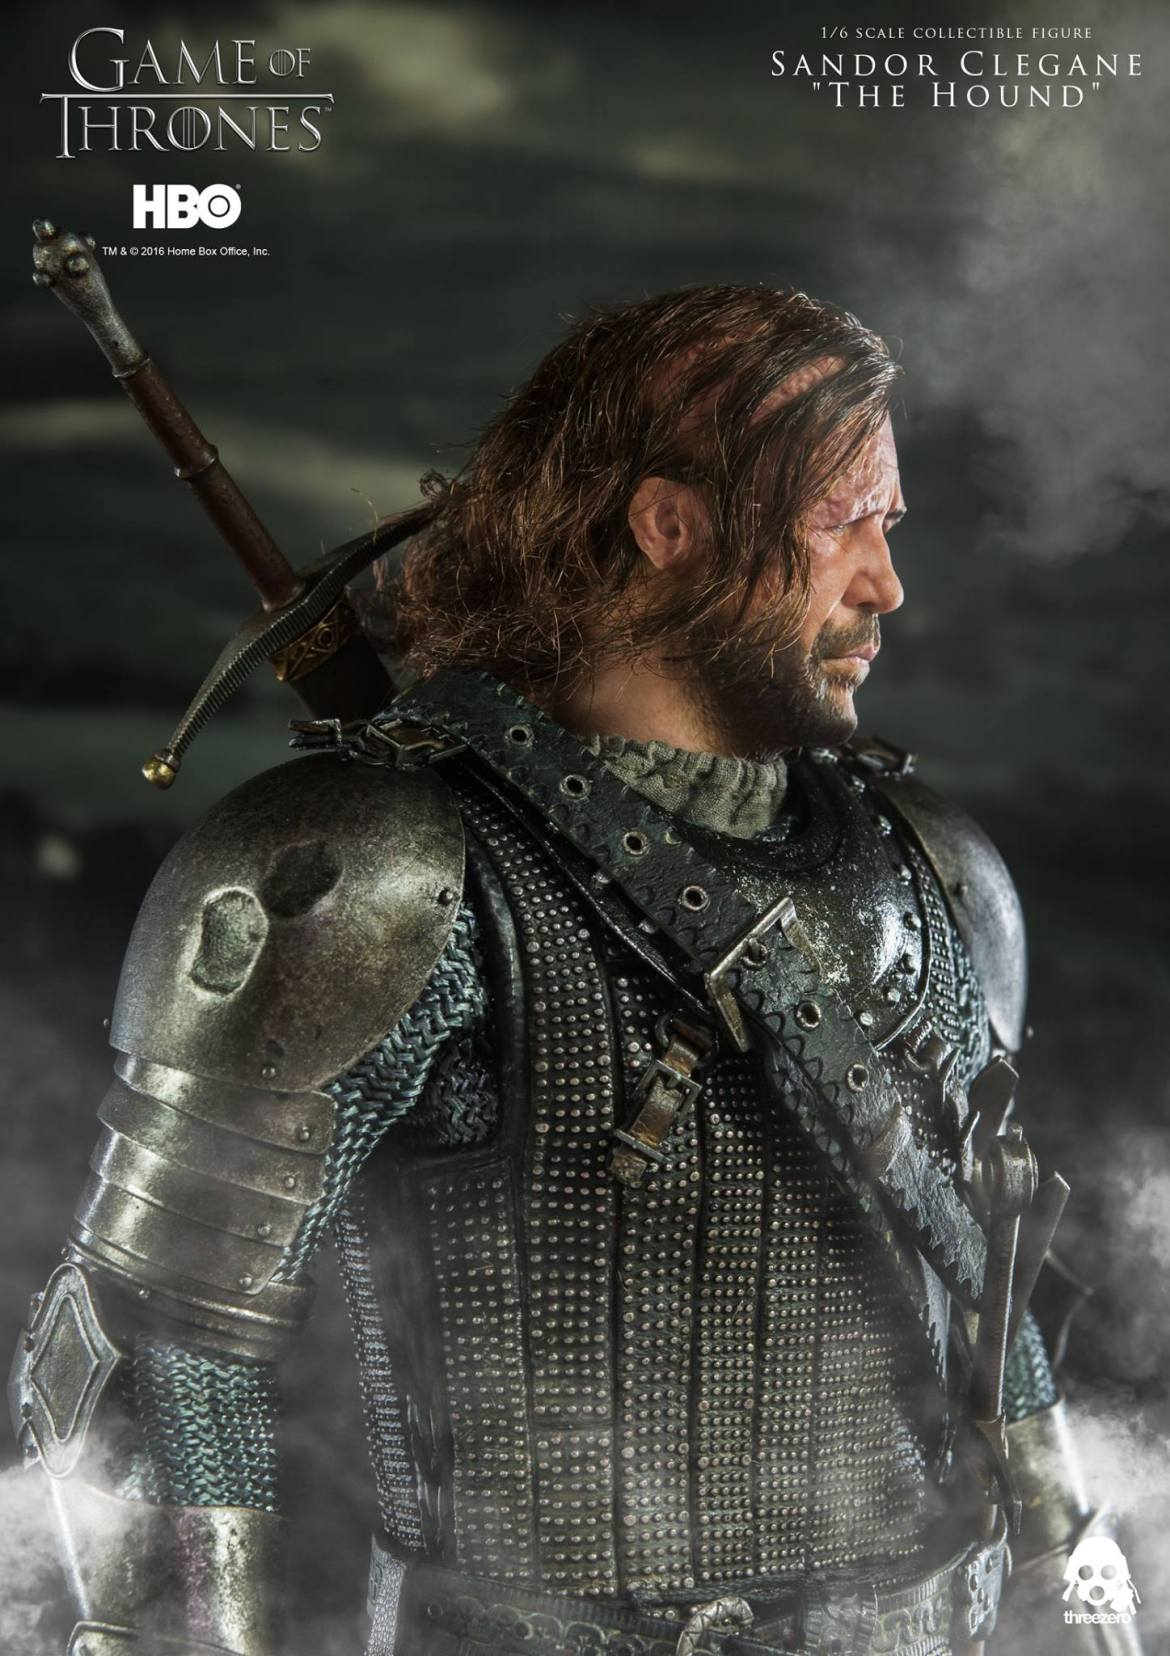 Game of Thrones, The Hound